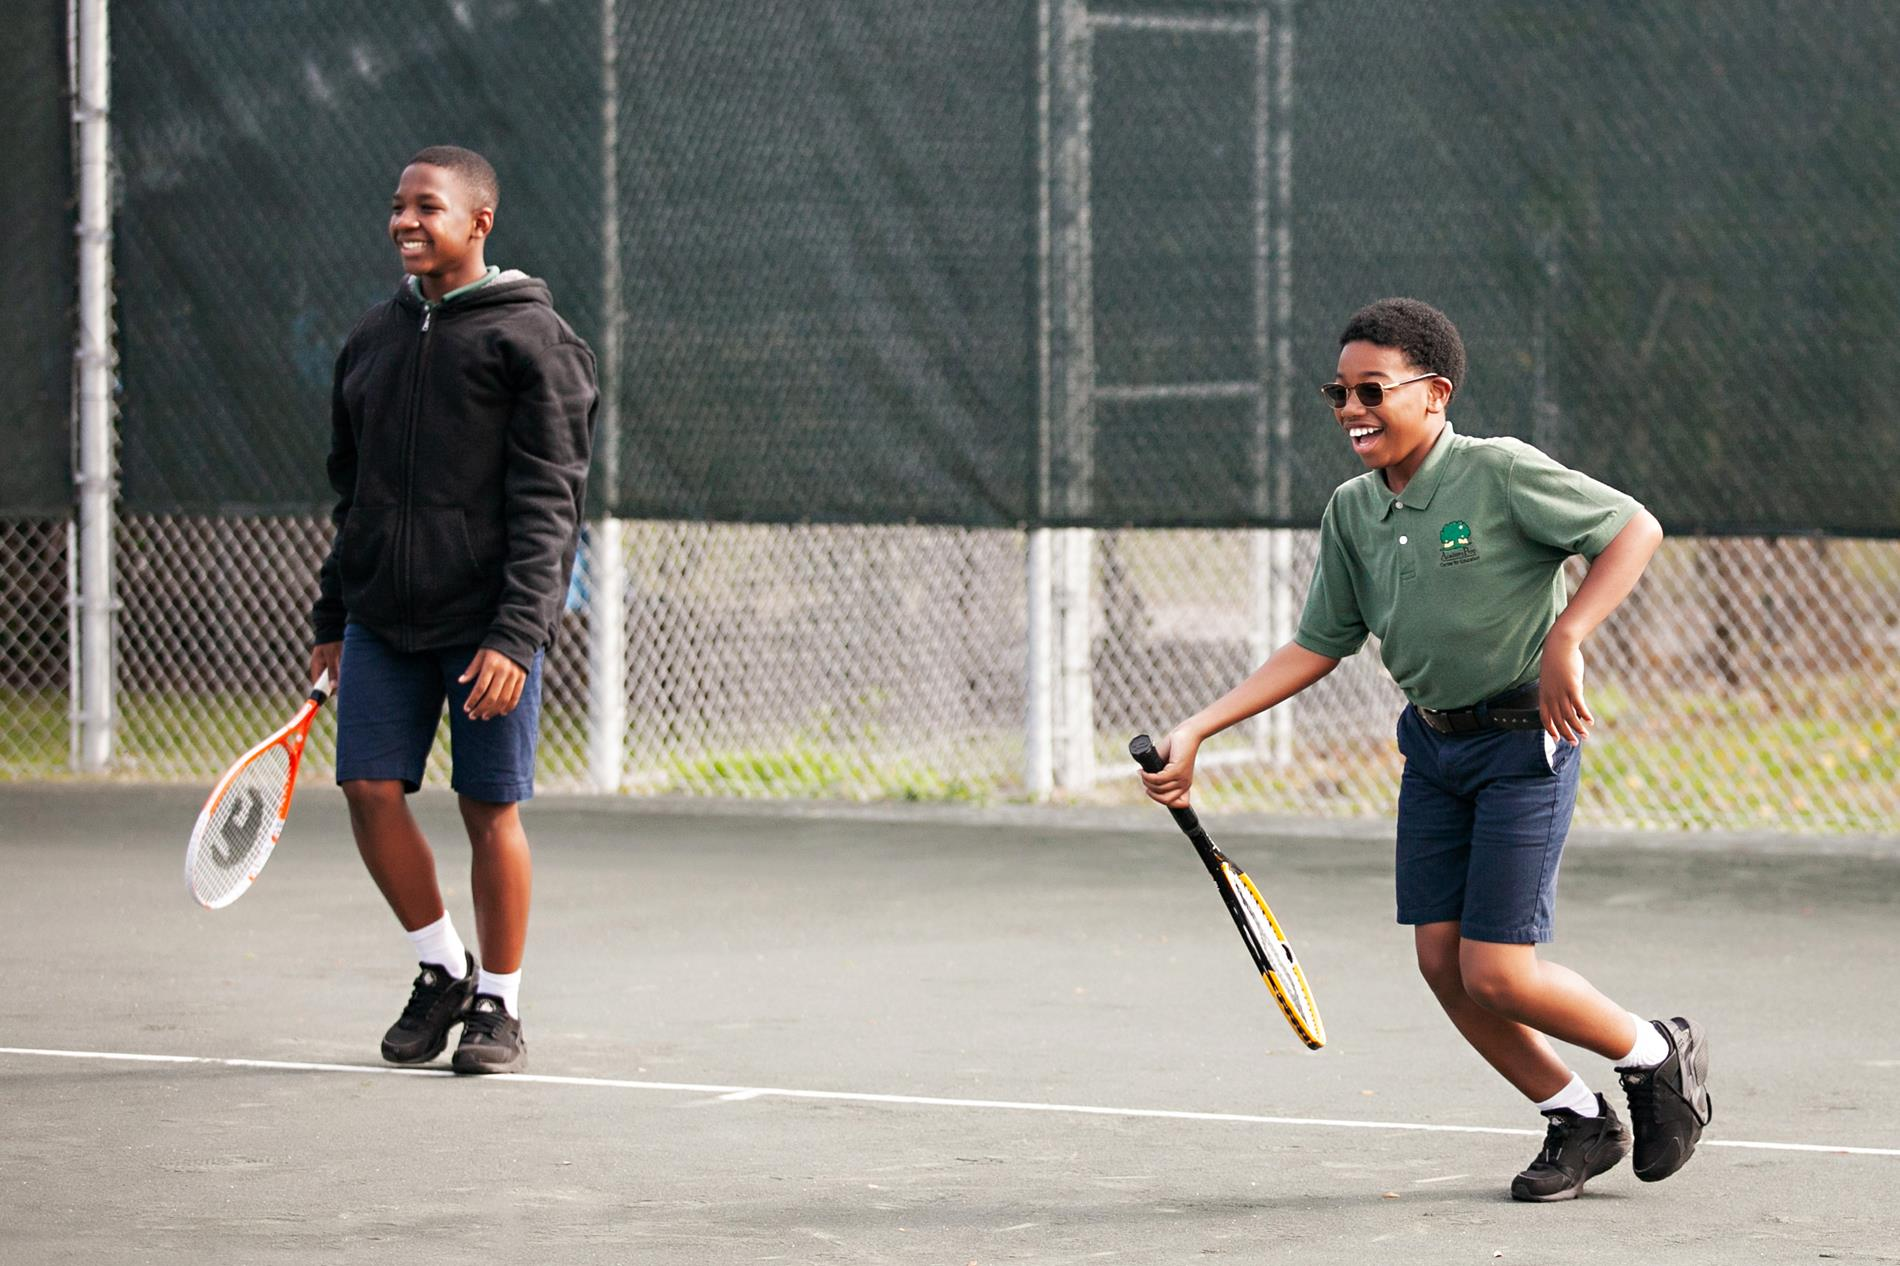 male students playing tennis